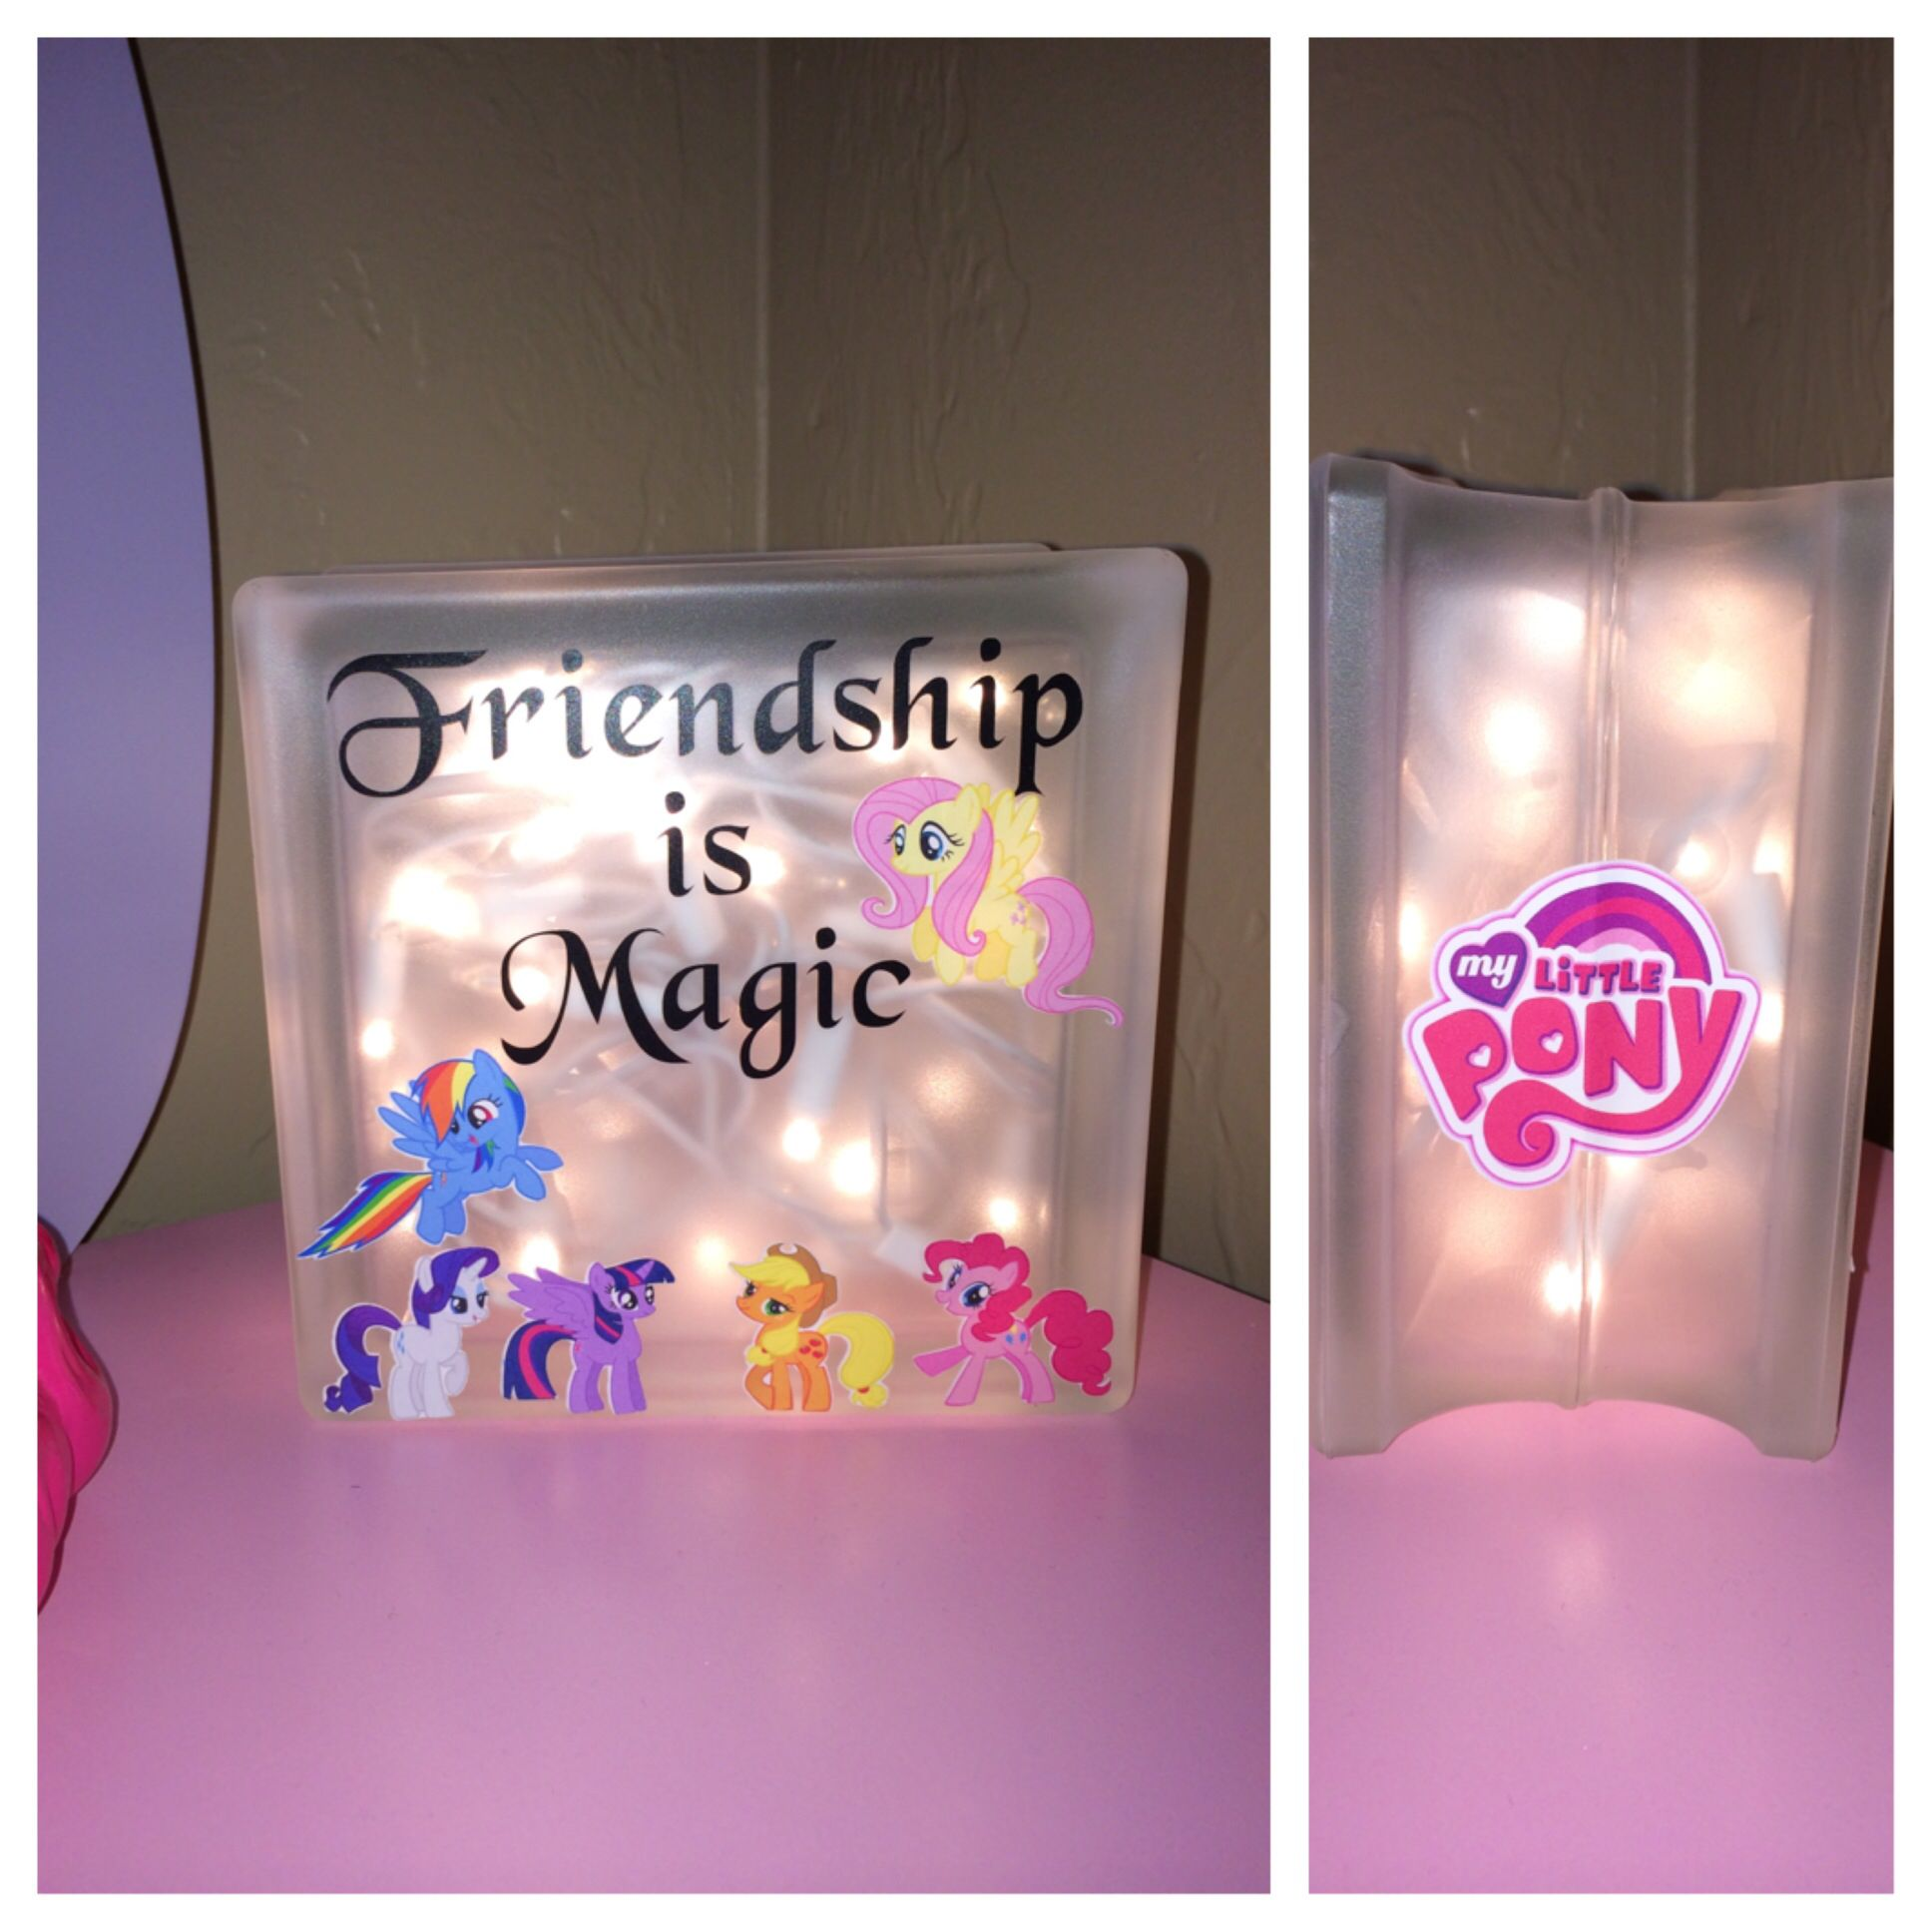 My Little Pony Light Up Glass Box It Made A Great Night Light For Our